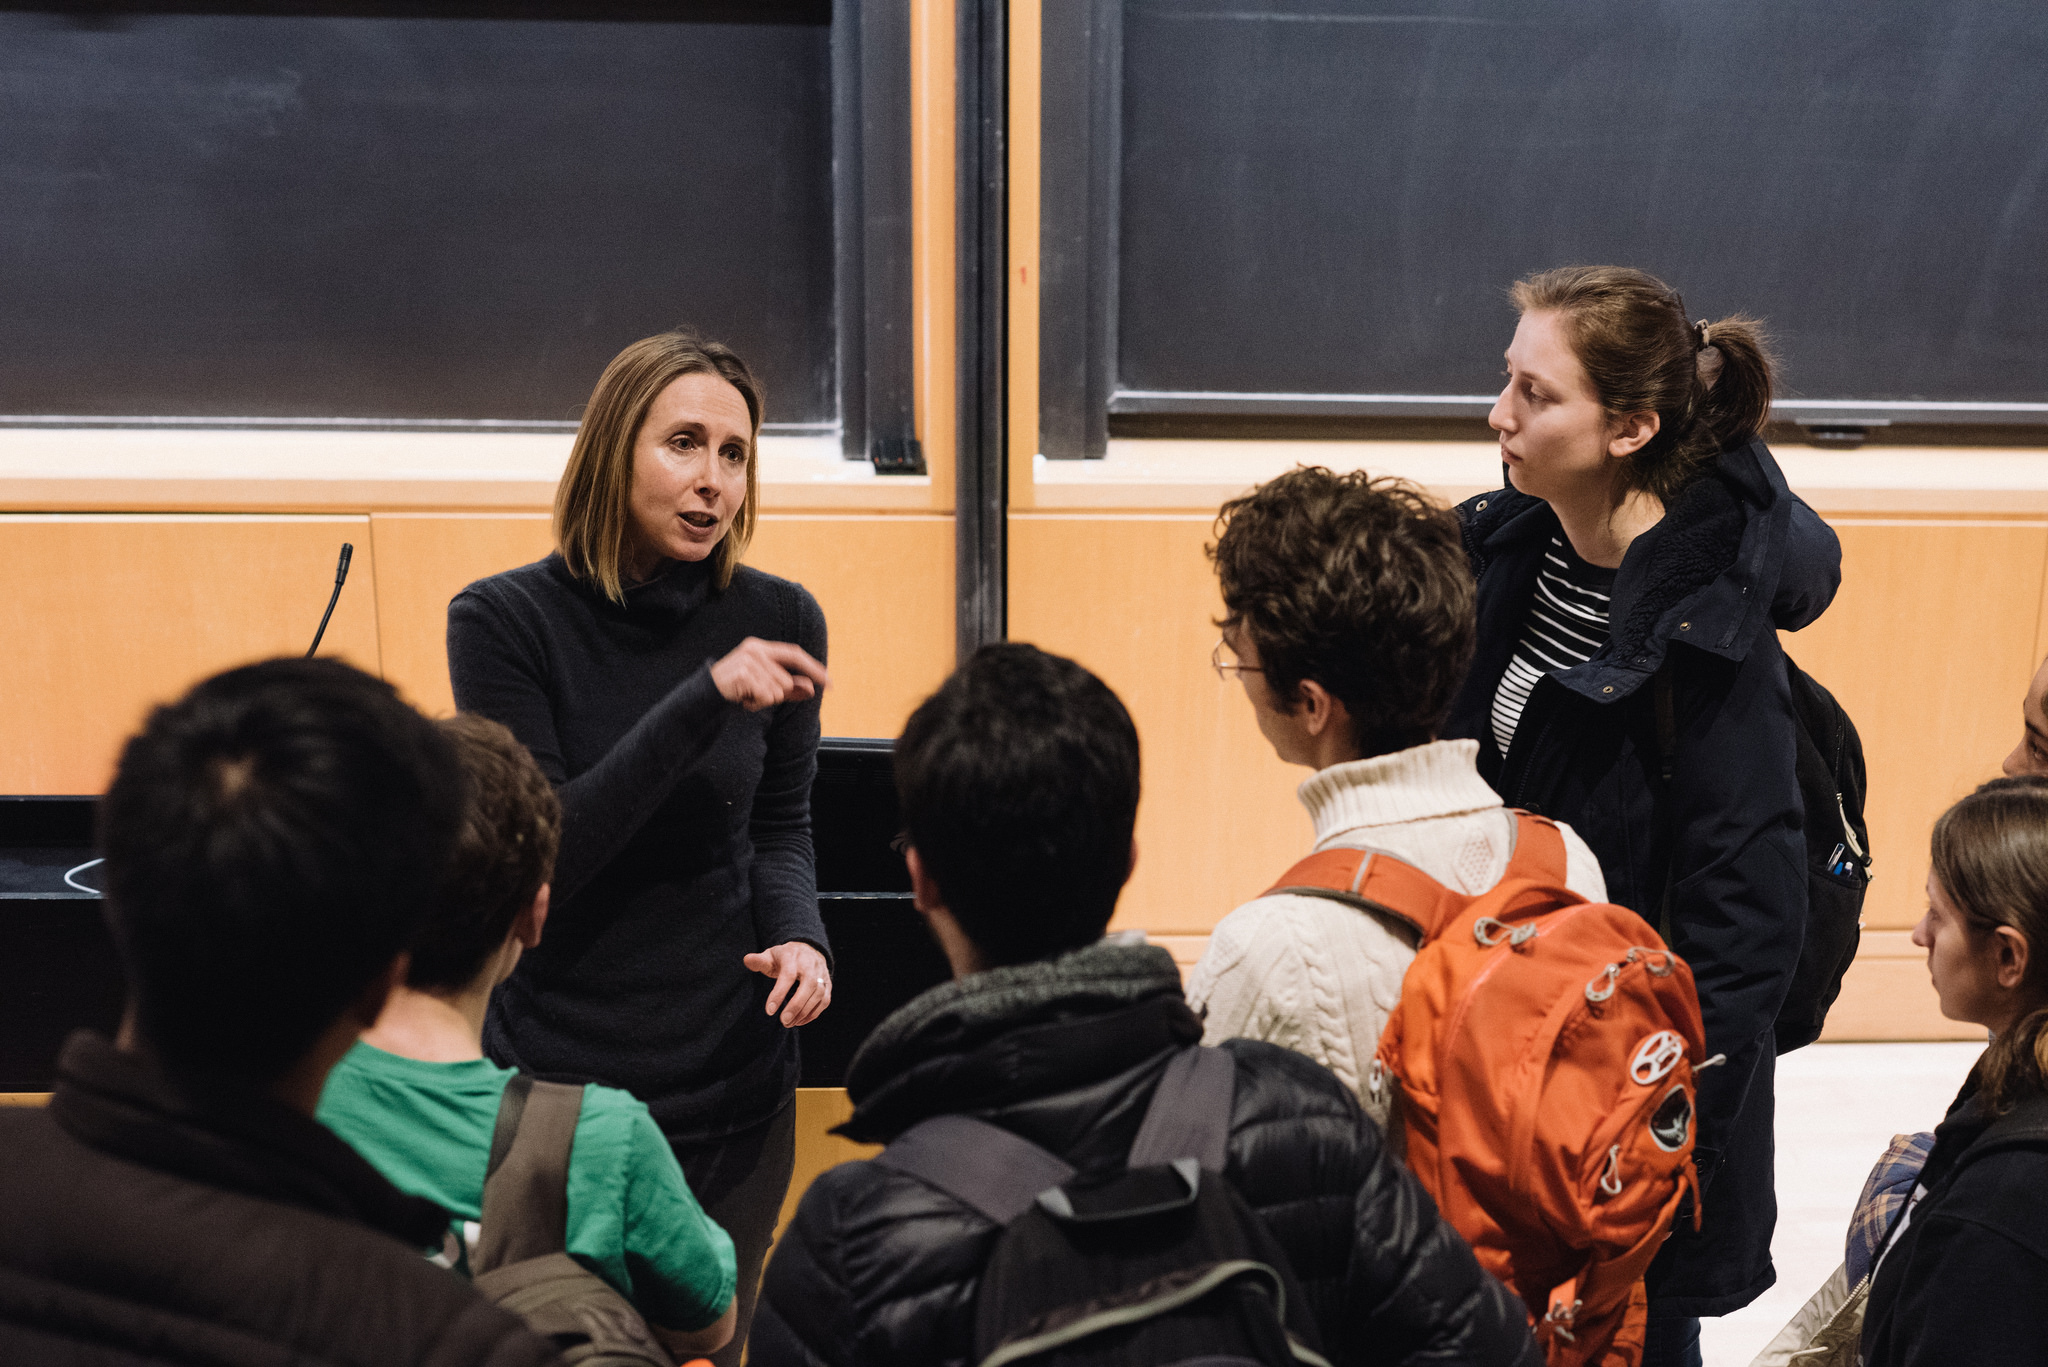 A visiting lecturer discussing technology and the environment with Princeton students.